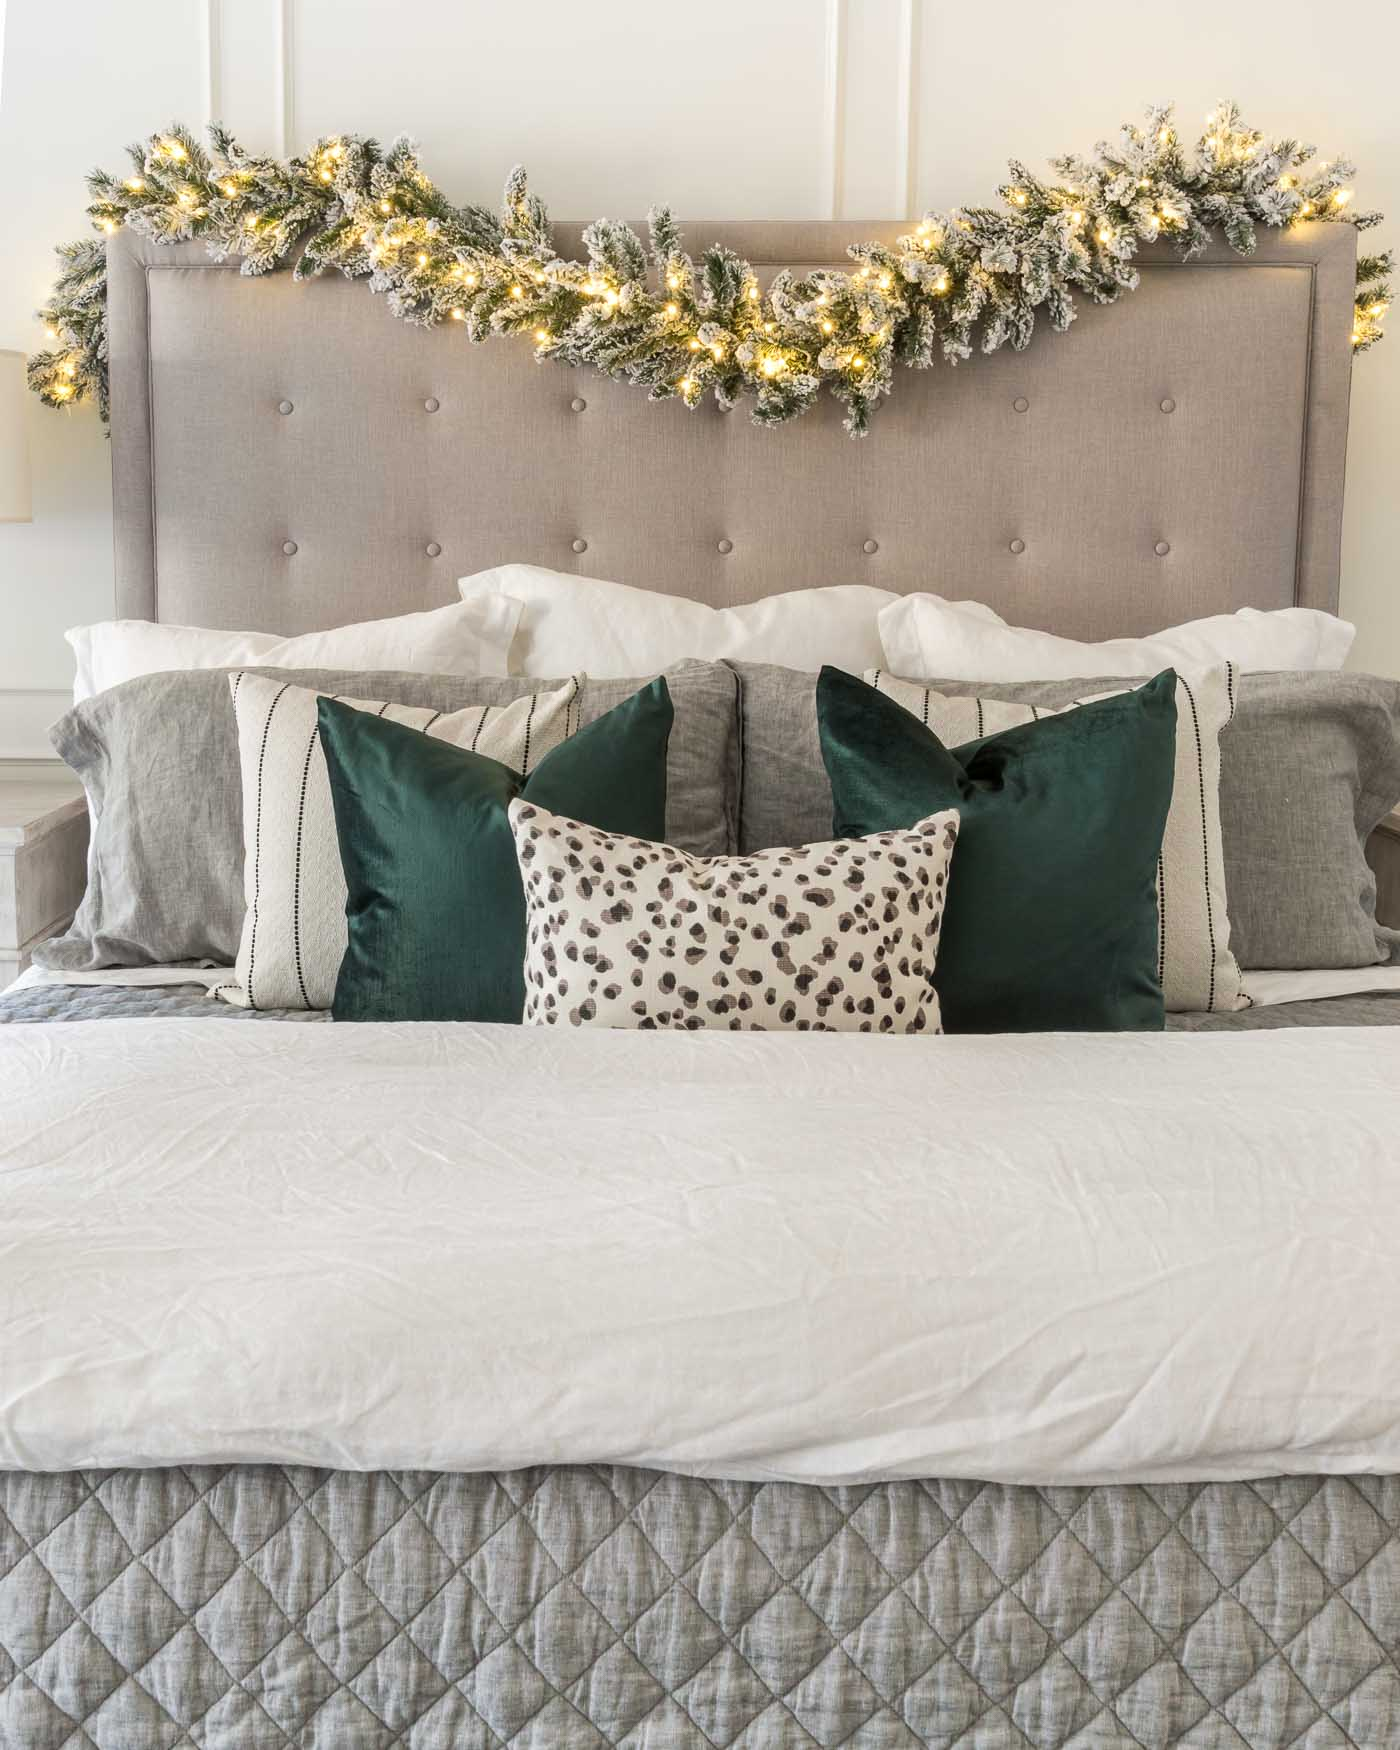 Christmas Decor Ideas for the Bedroom- Garland and Lights Draped Over Tufted Headboard